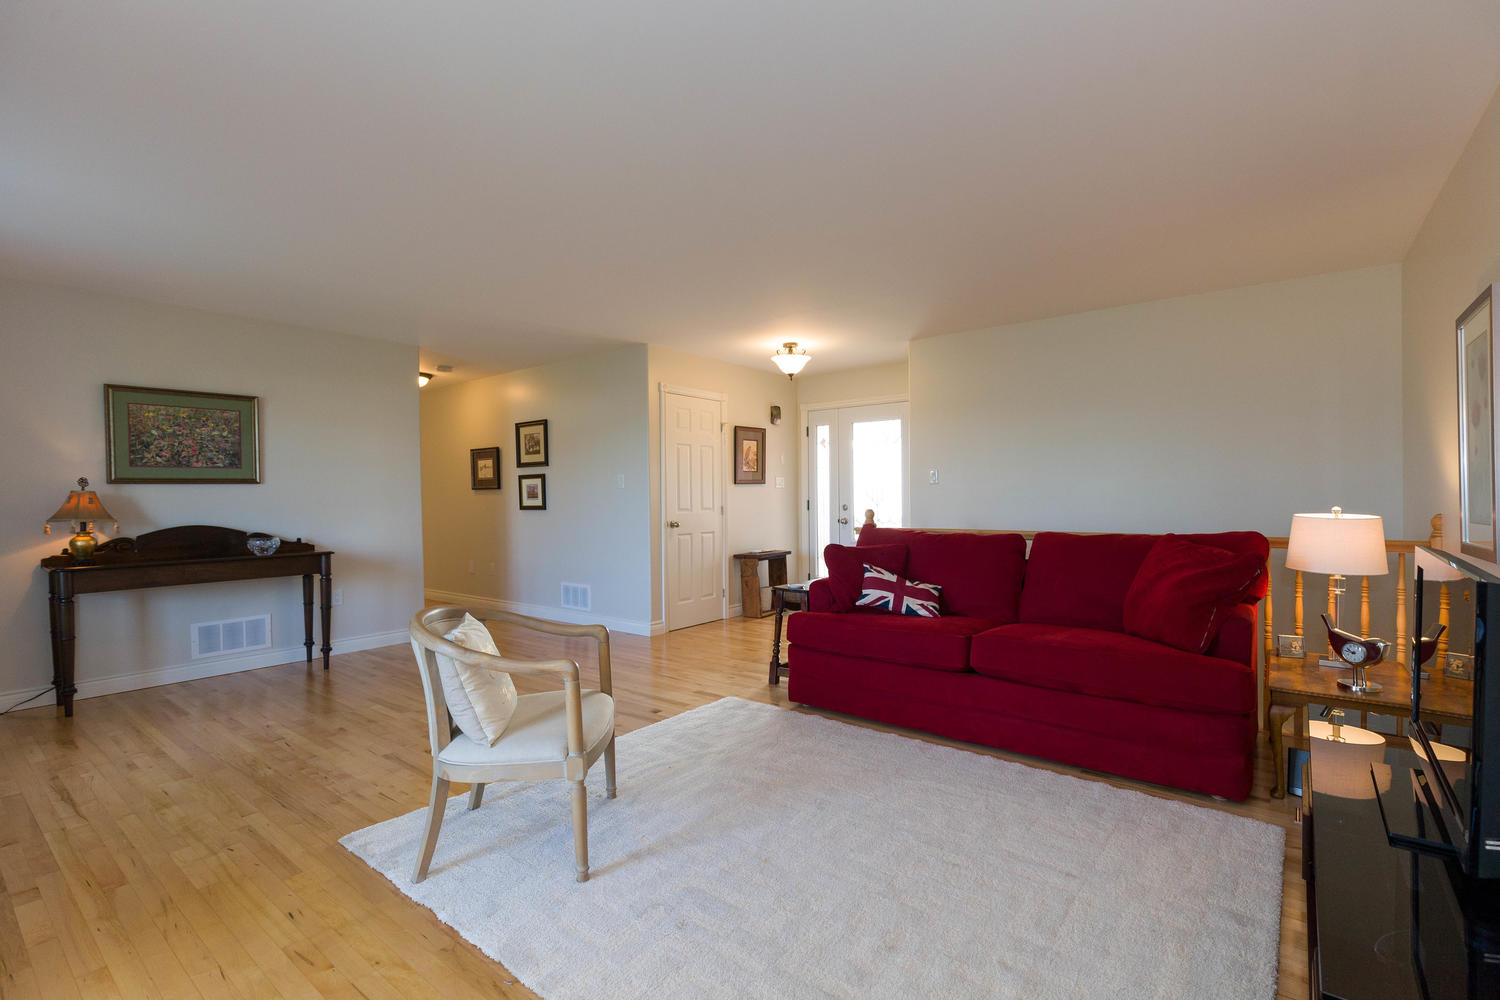 Large open living space, hardwood flooring, lots of natural light.  Just a nice flowing floor plan and open and inviting from the moment you walk into it no matter from what angle.